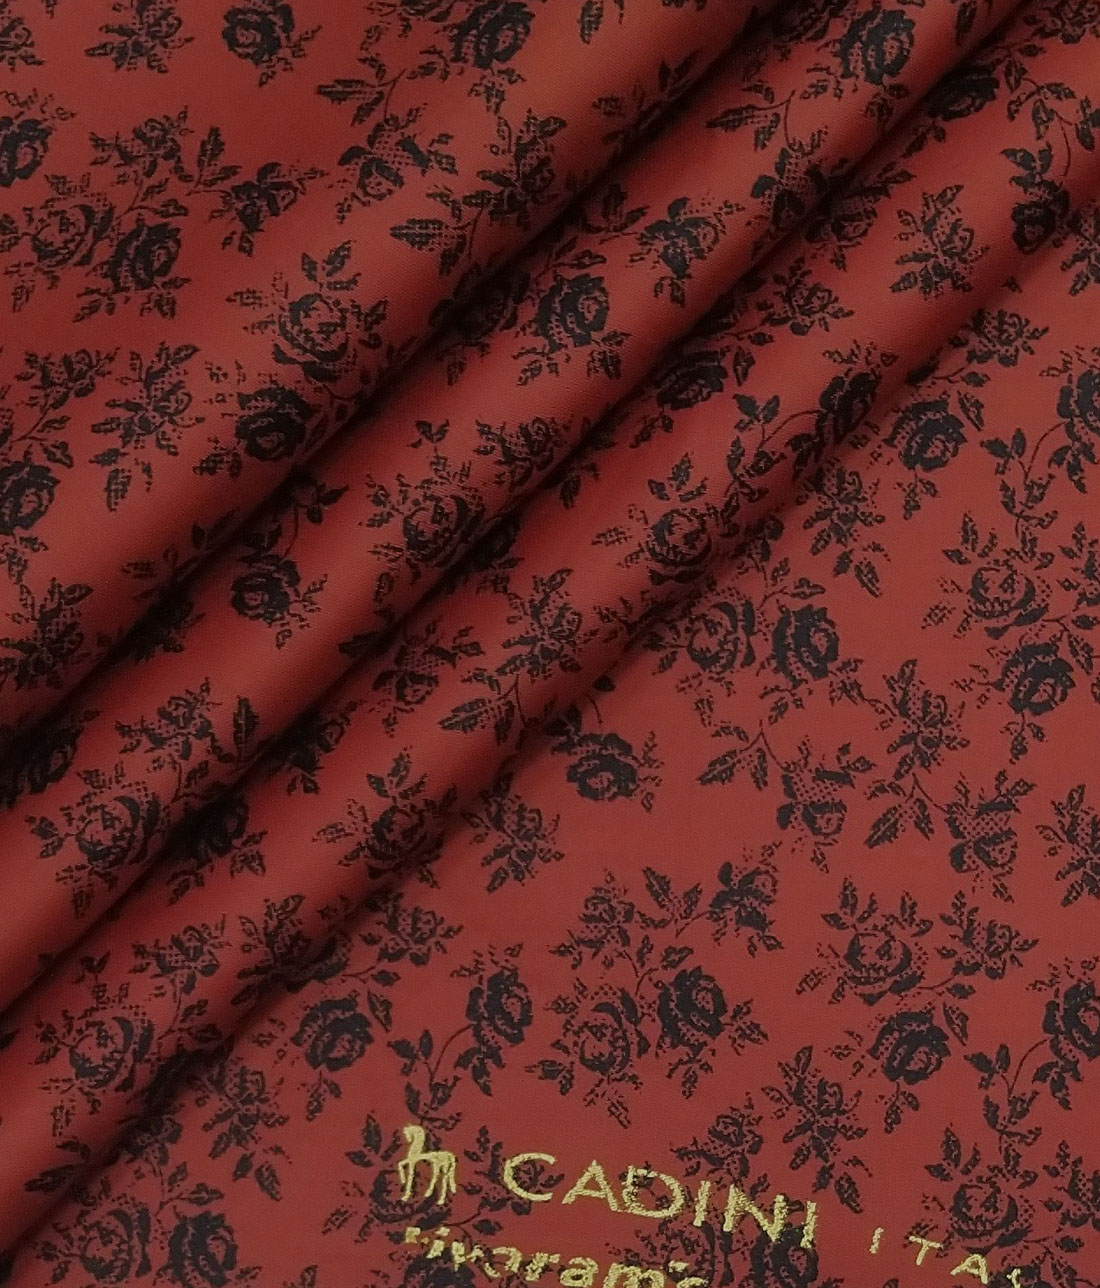 Cadini Italy Sangaria Red 100% Cotton Dark Blue Floral Print Shirt Fabric (1.60 M)